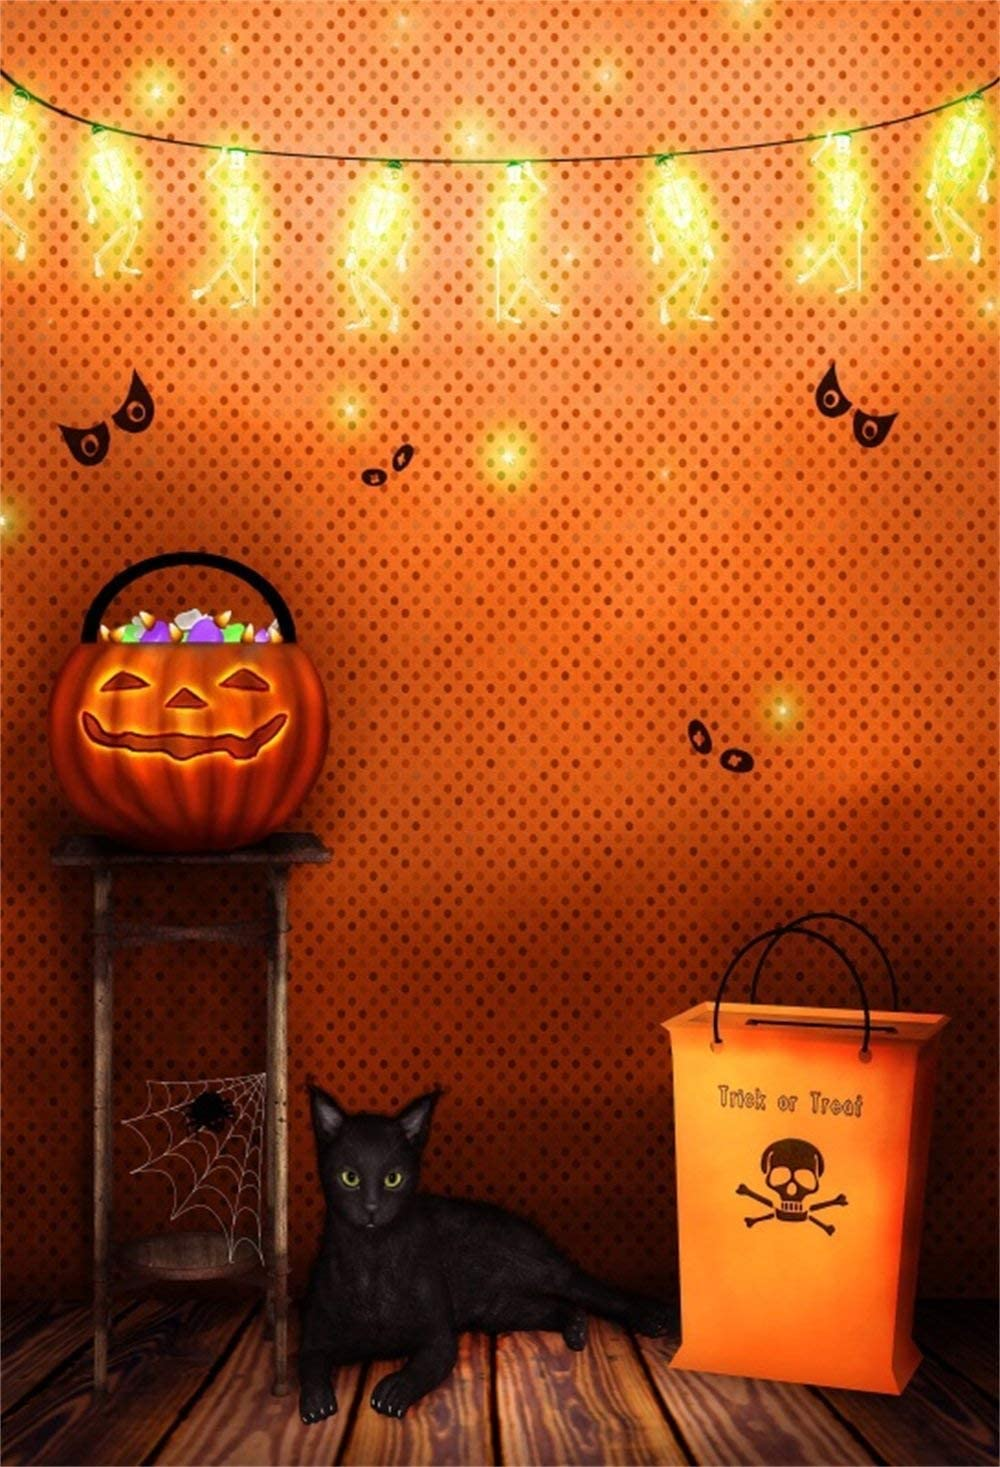 Amazon Com Cdhbh 6x9ft Halloween Theme Background Tricky Witch S Room Pumpkin Hut Ghost Eyes Skeleton Light Black Cat Spider Web Skull Photo Studio Photo Photography Props Festival Venue Party Layout Camera Photo